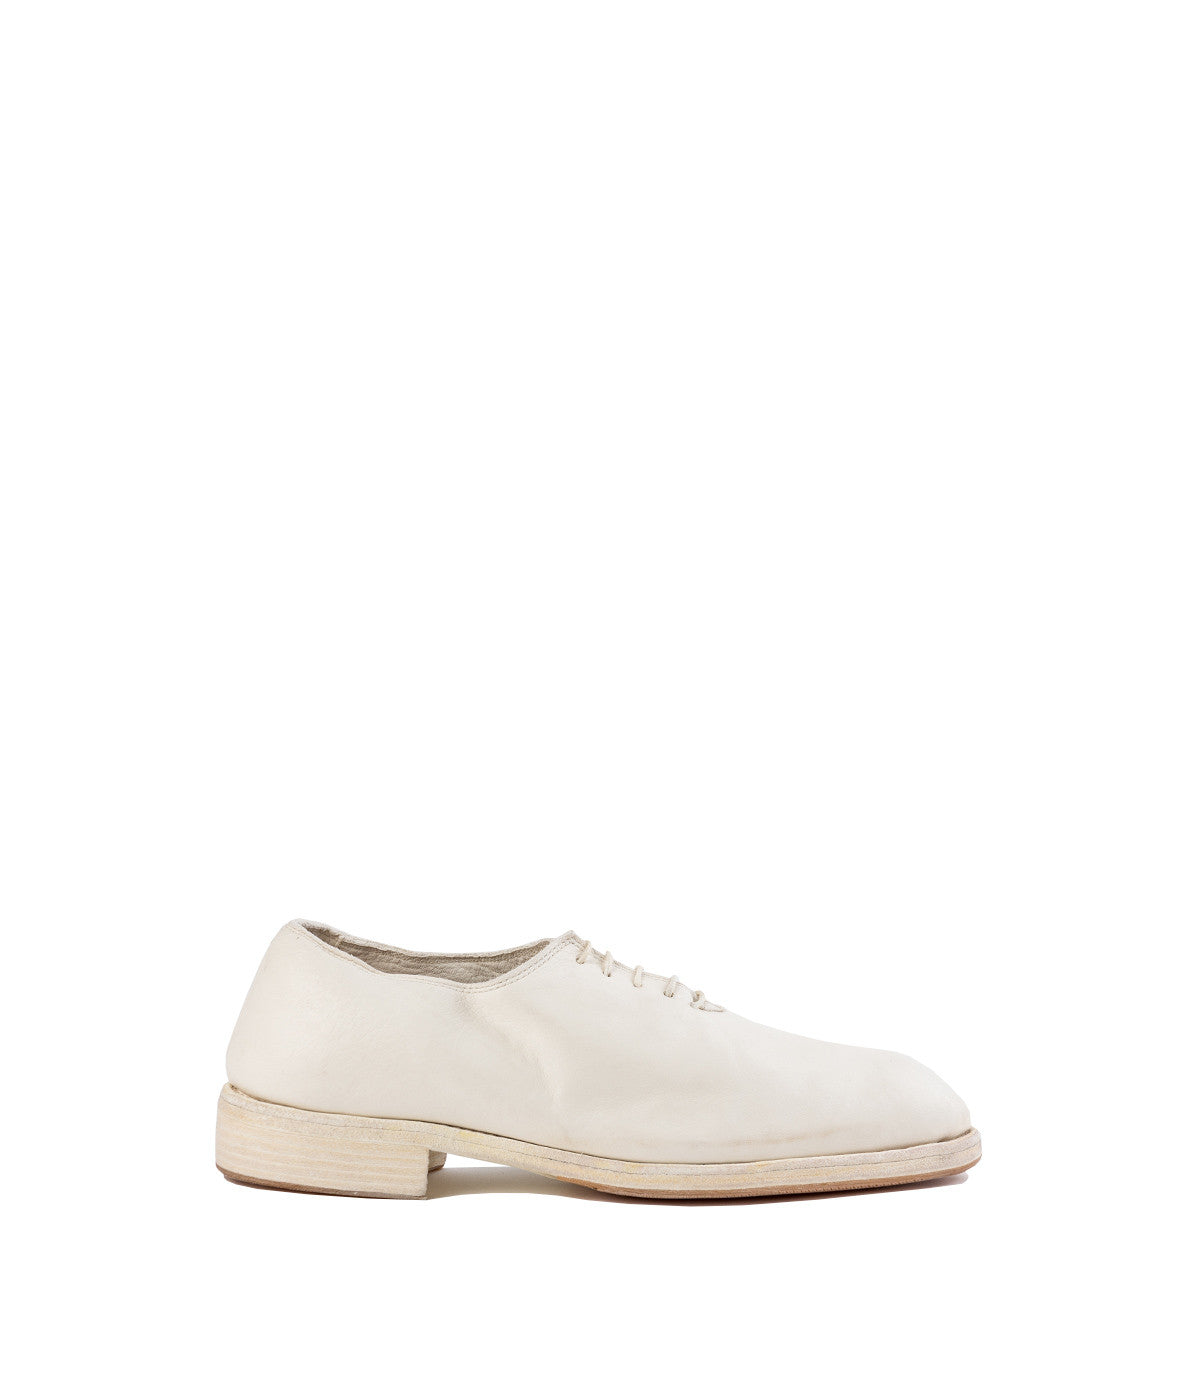 White Whole Cut Oxford Shoes